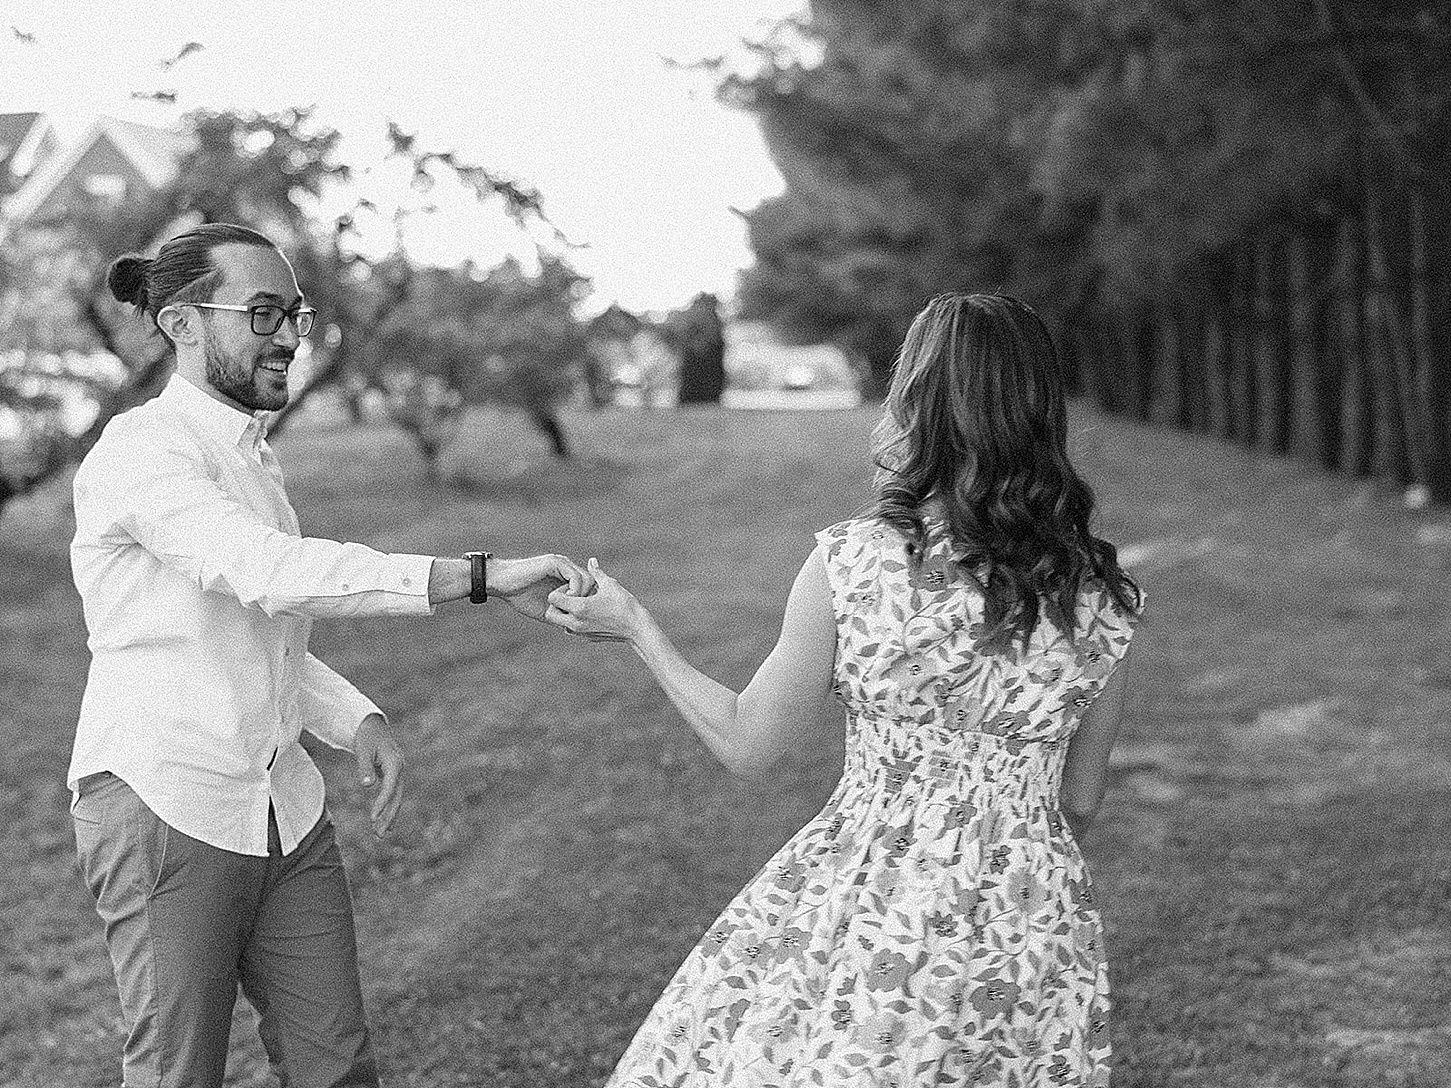 Bast Brothers Garden Center Mullica Hill NJ Engagement Photography by Magdalena Studios 0005